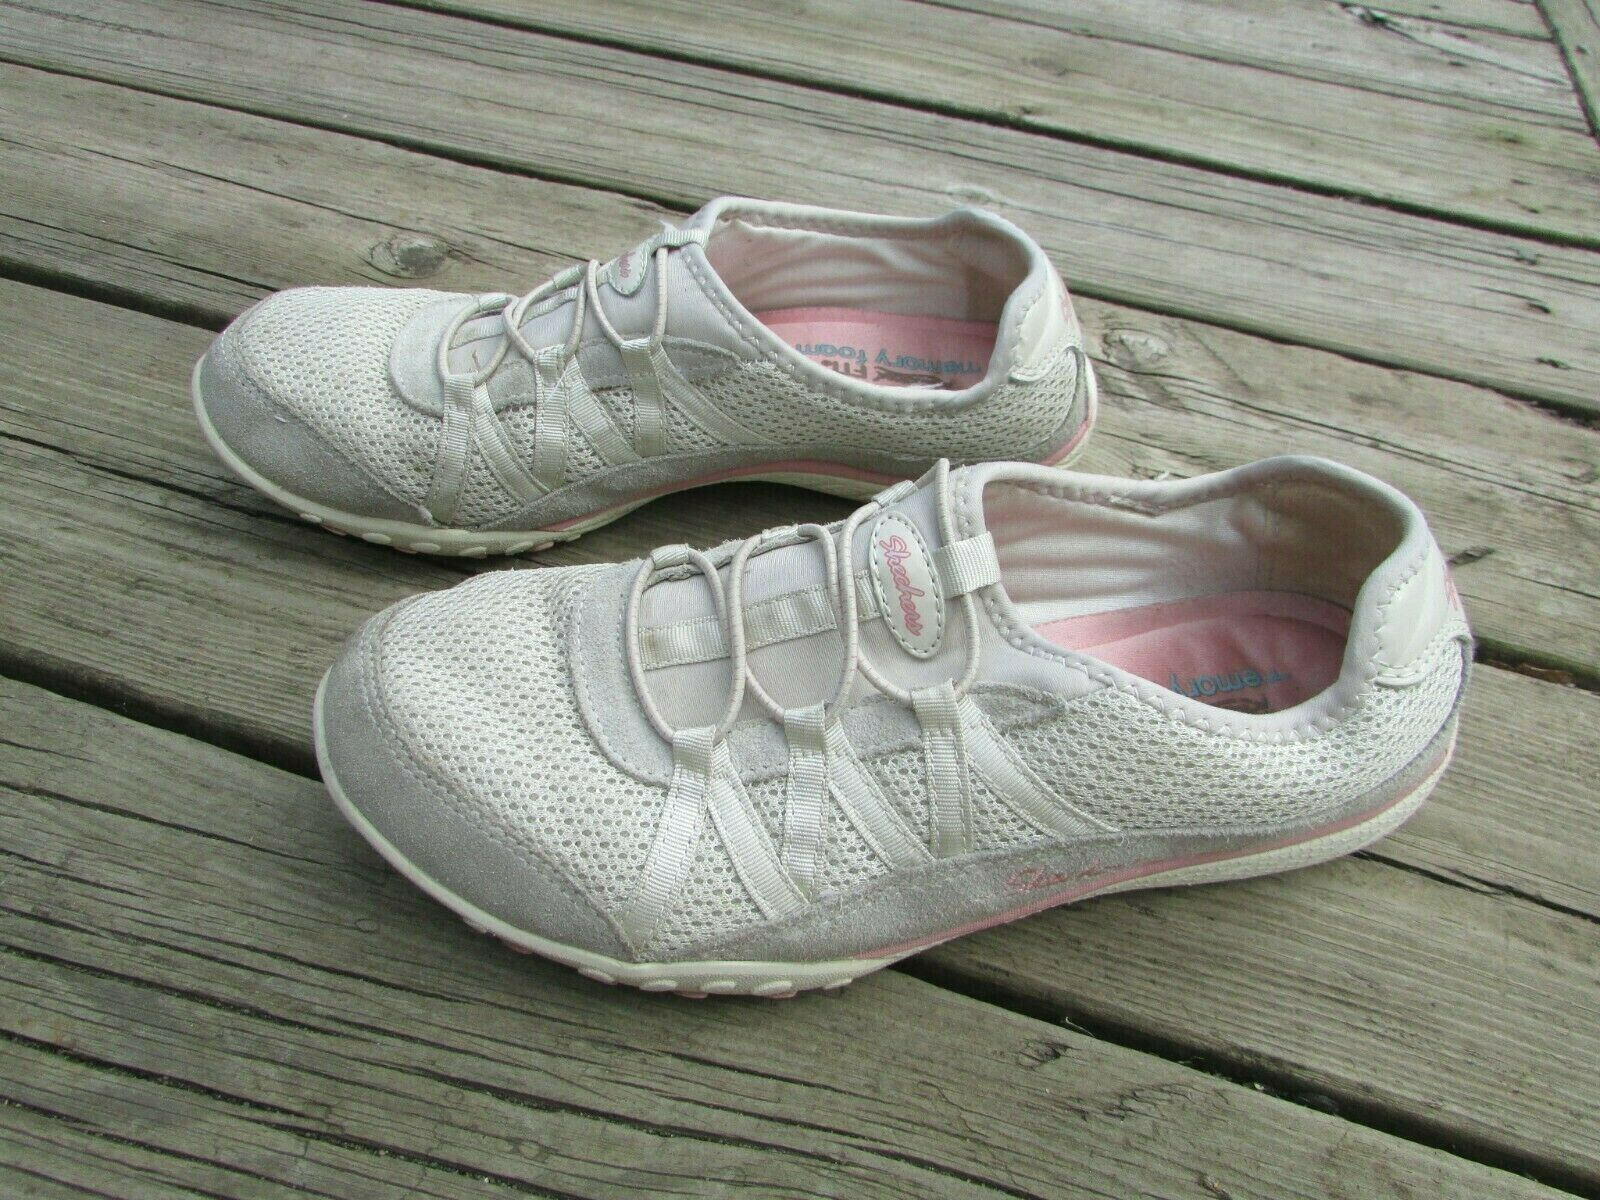 Skechers Relaxed Fit Beige Suede Pink Sneakers Memory Foam Size 7 (37) Used